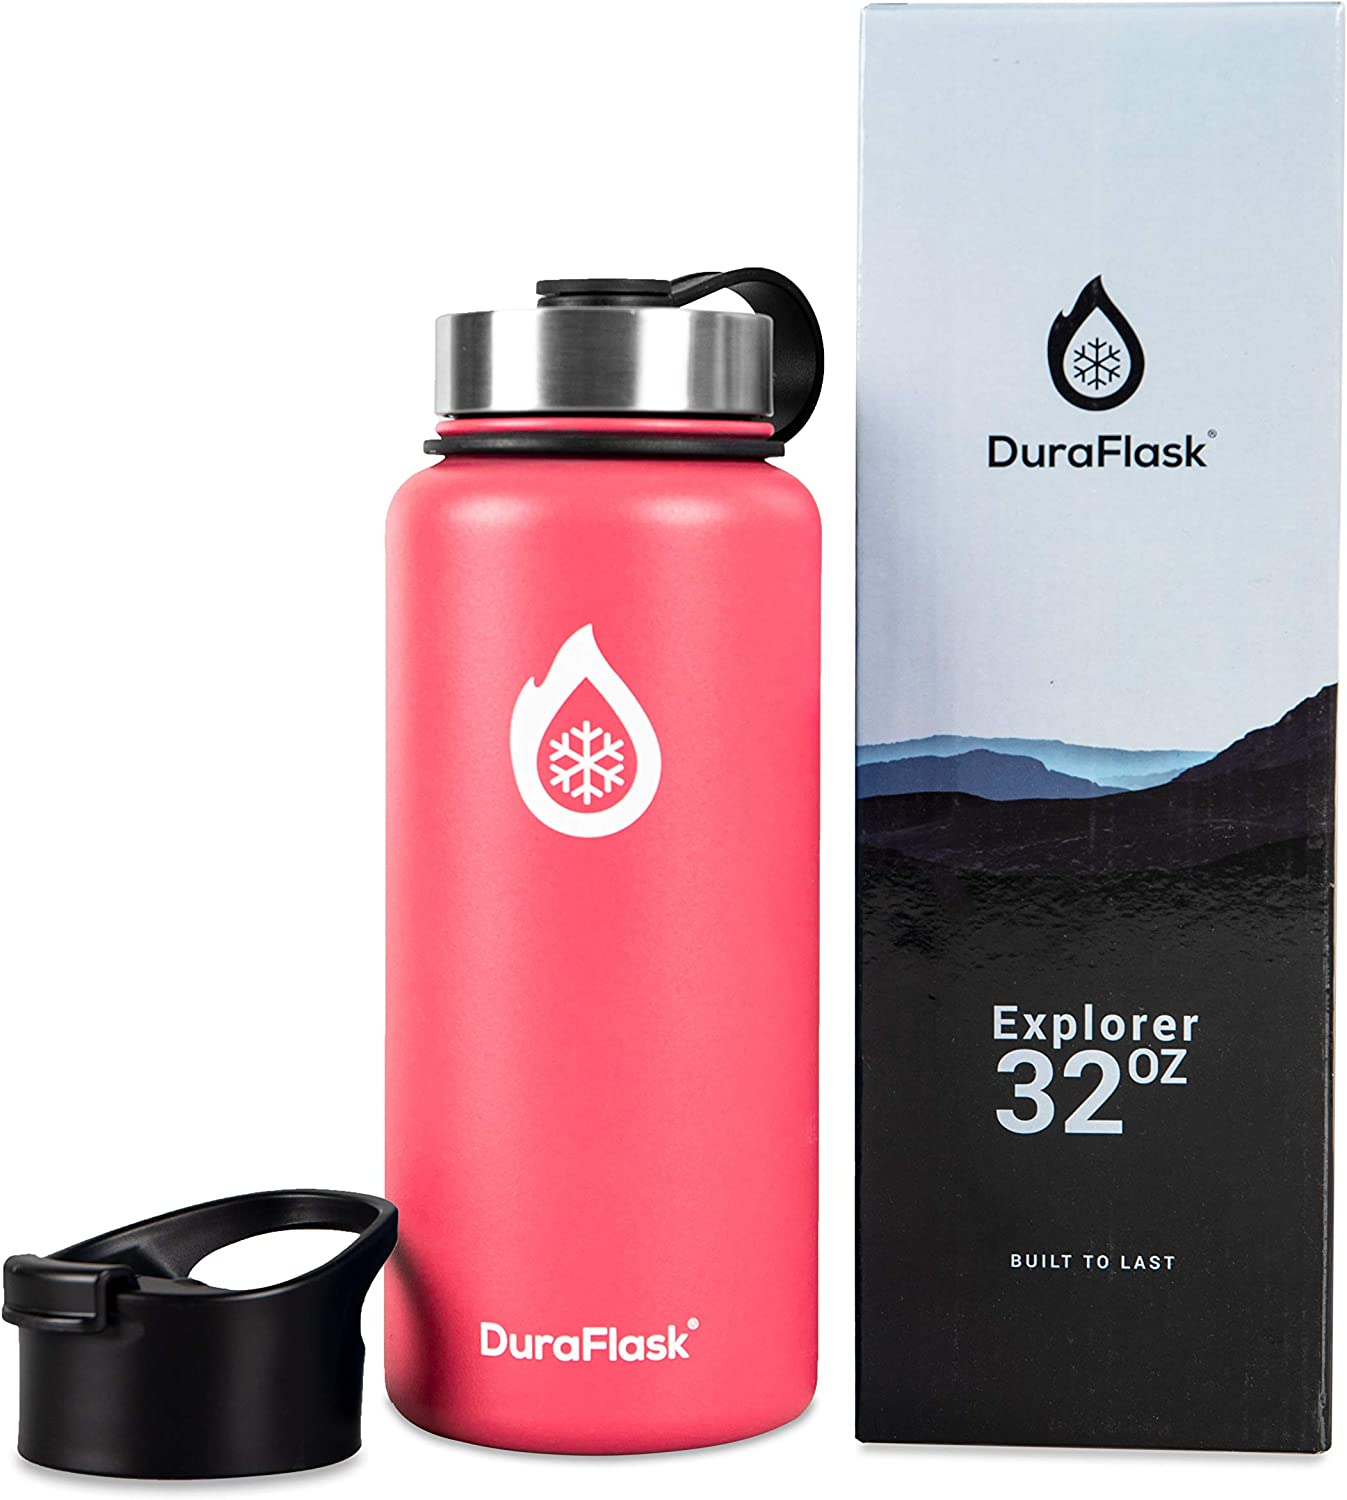 DuraFlask Explorer Double-Wall Vacuum Insulated Water Bottle (32oz) w/ 3 Thermal Optimizing Layers - Copper Dipped & 18/8 Stainless Steel Water Bottle – Raspberry